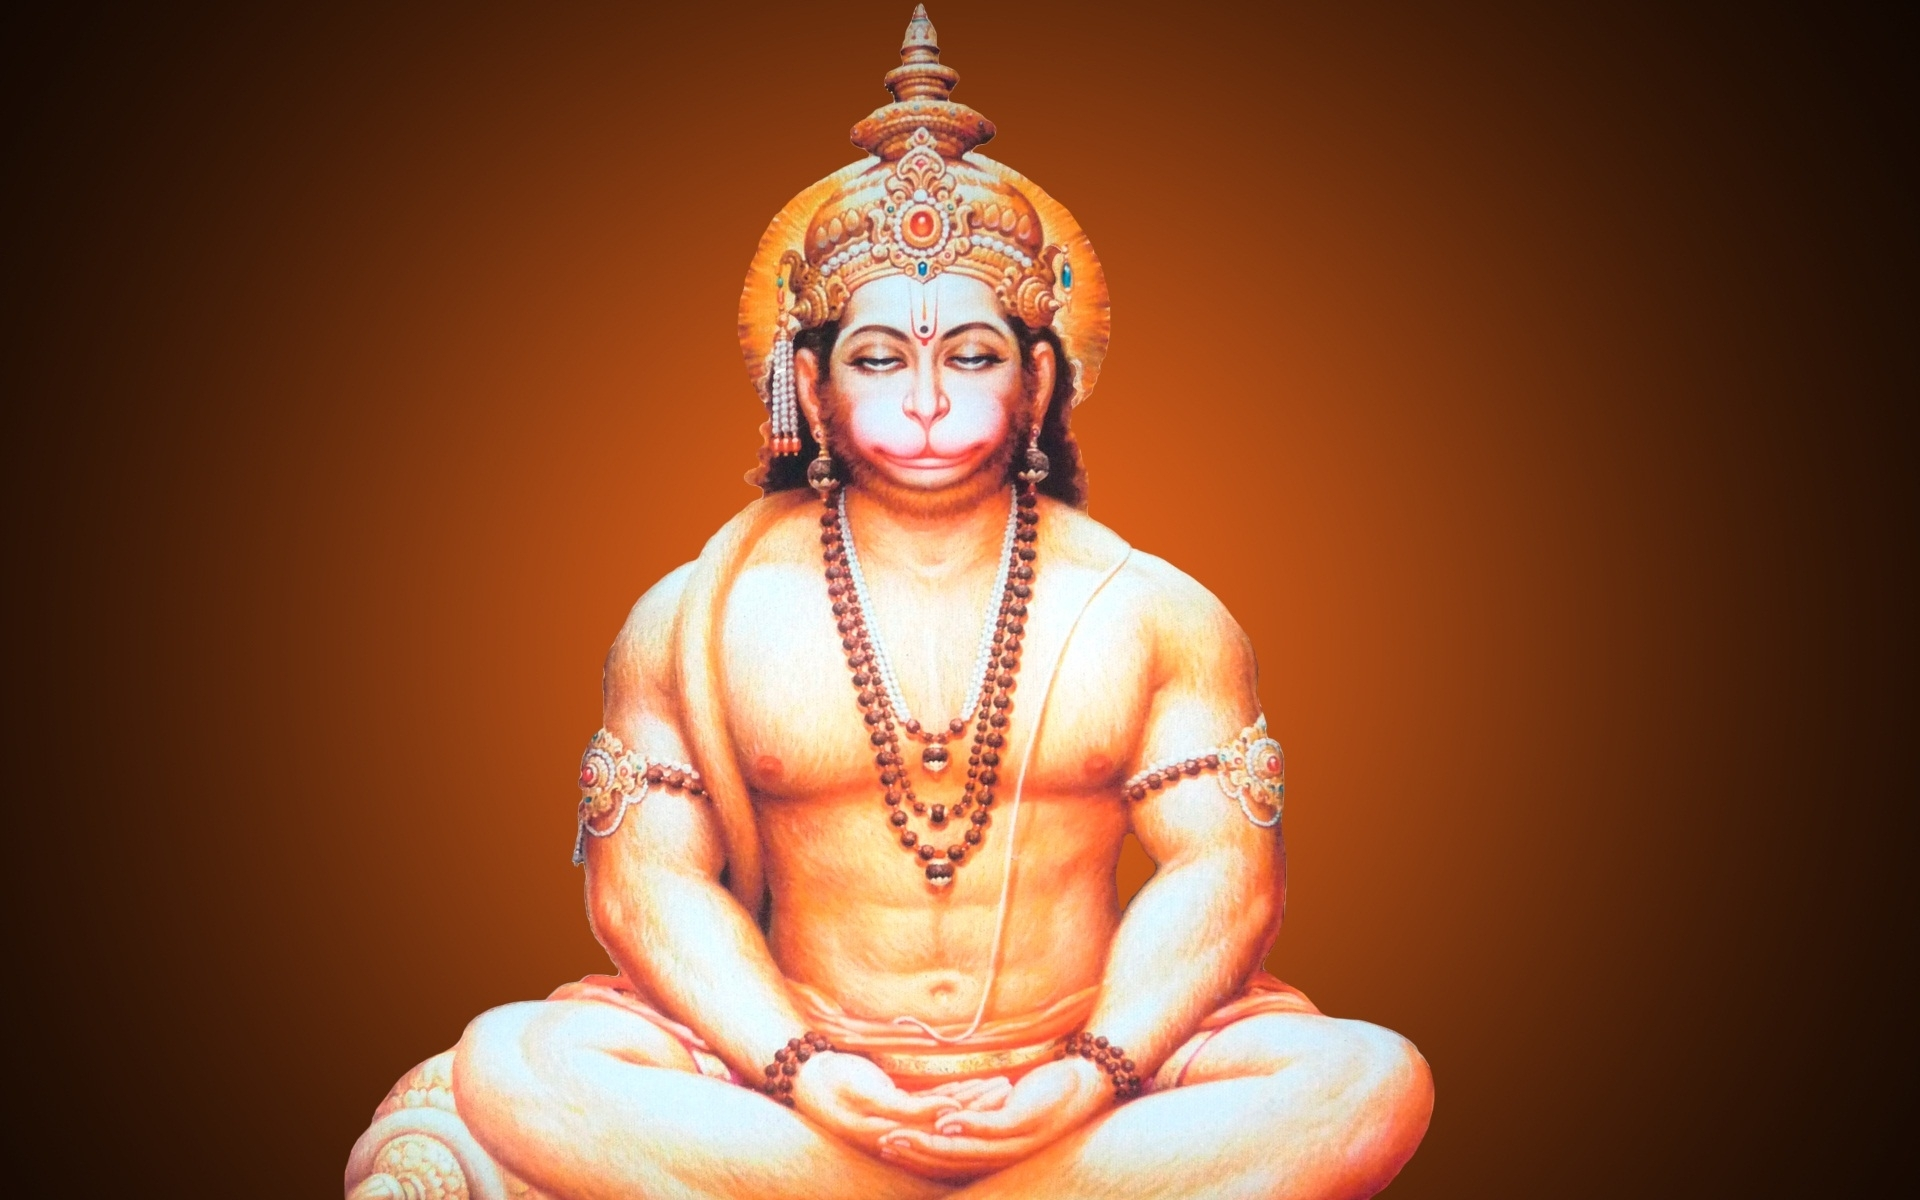 lord hanuman wallpapers hd, pc lord hanuman wallpapers hd most